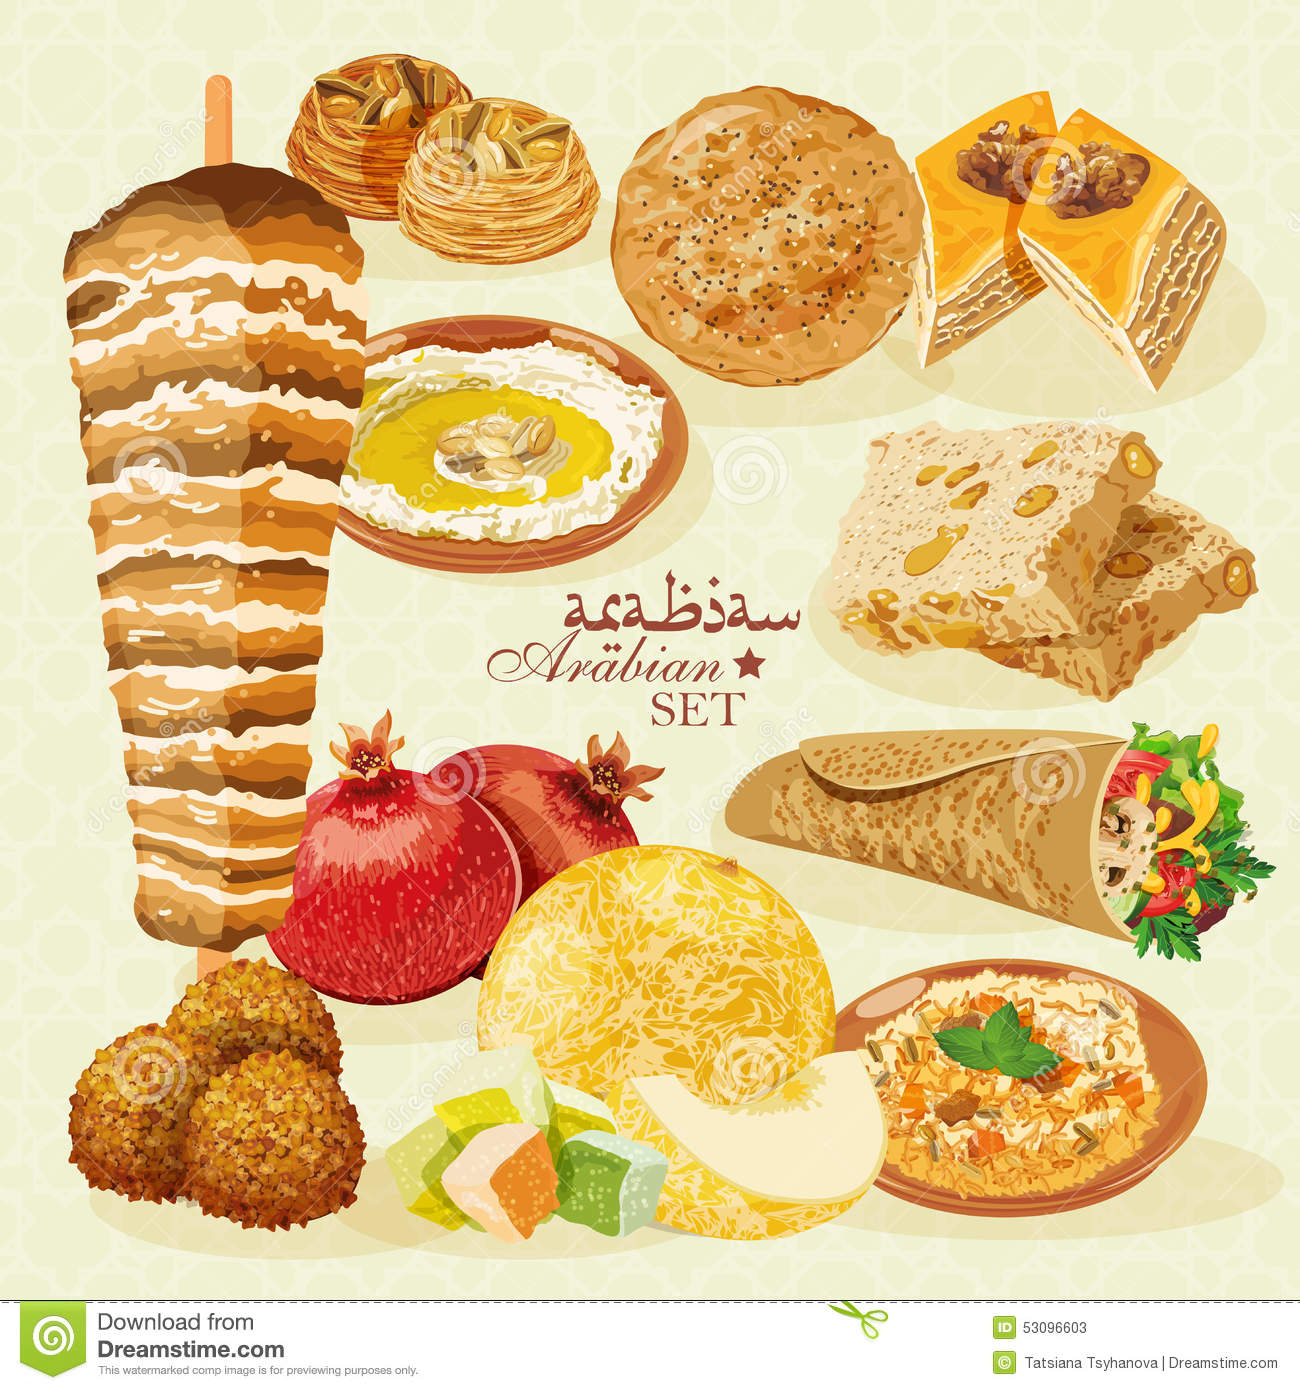 Arabian halal food with pastries and fruit stock vector for Arabic cuisine food